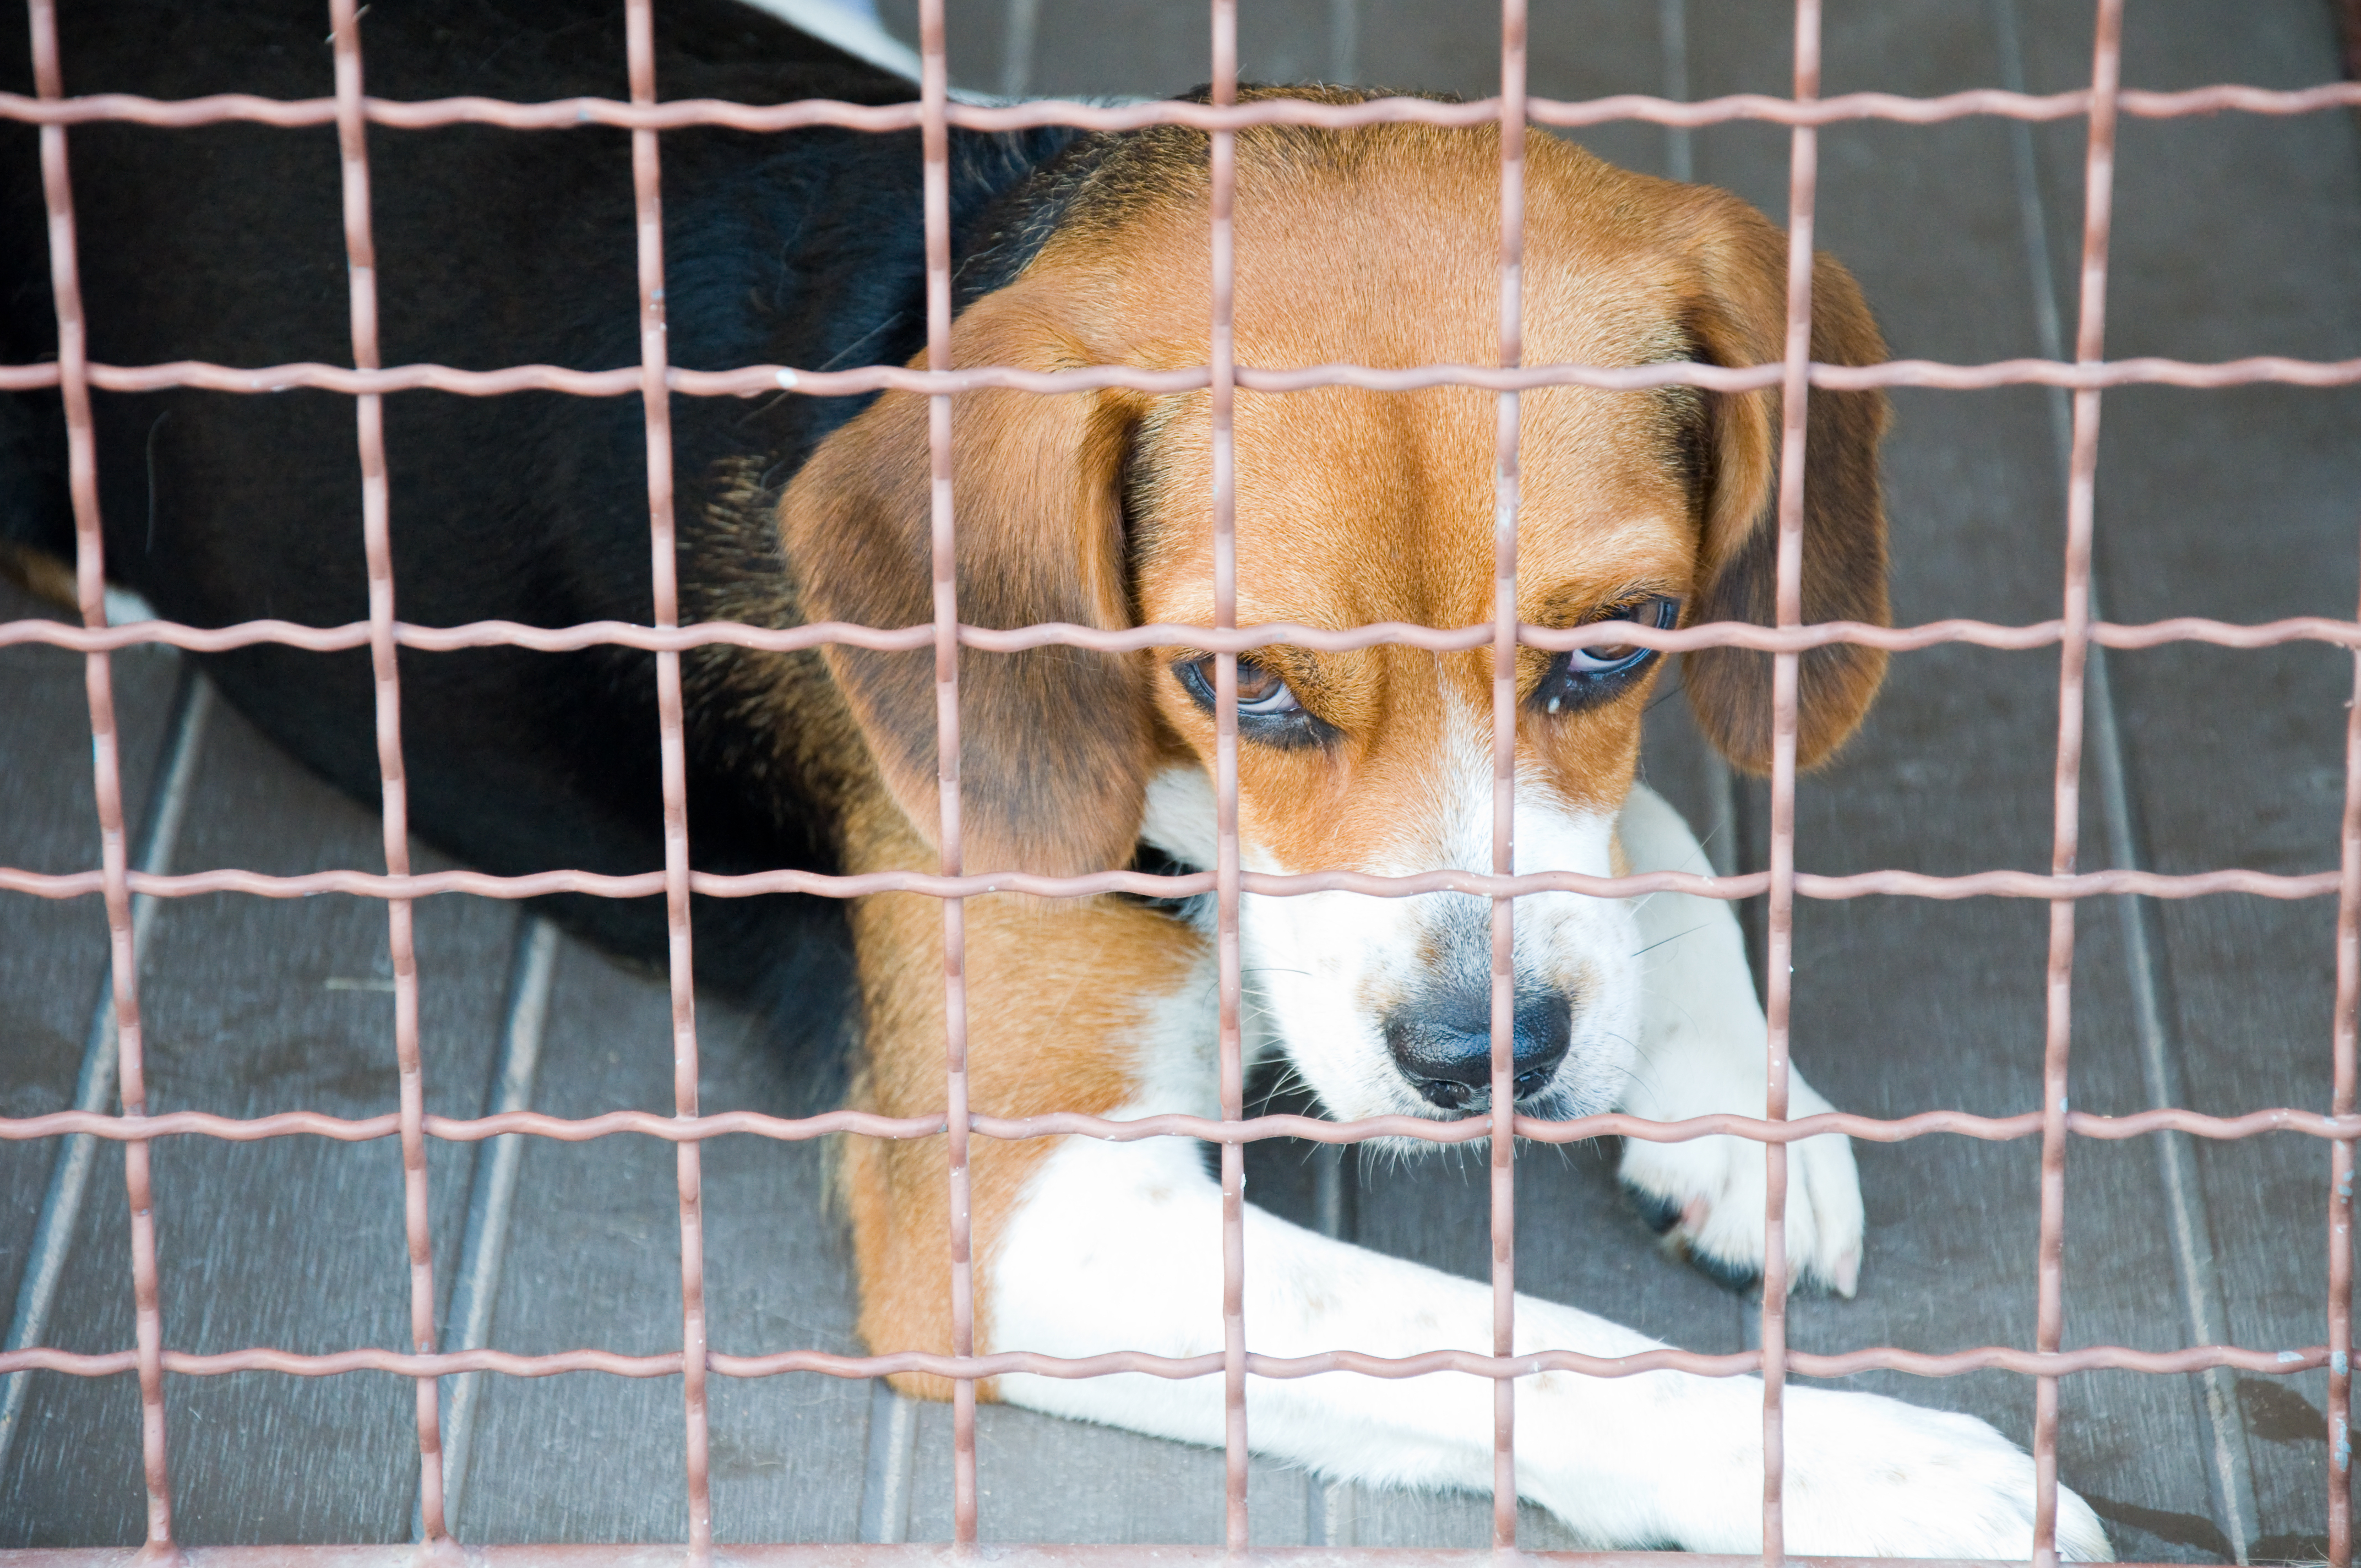 lonely_beagle_in_cage_closeup.jpg